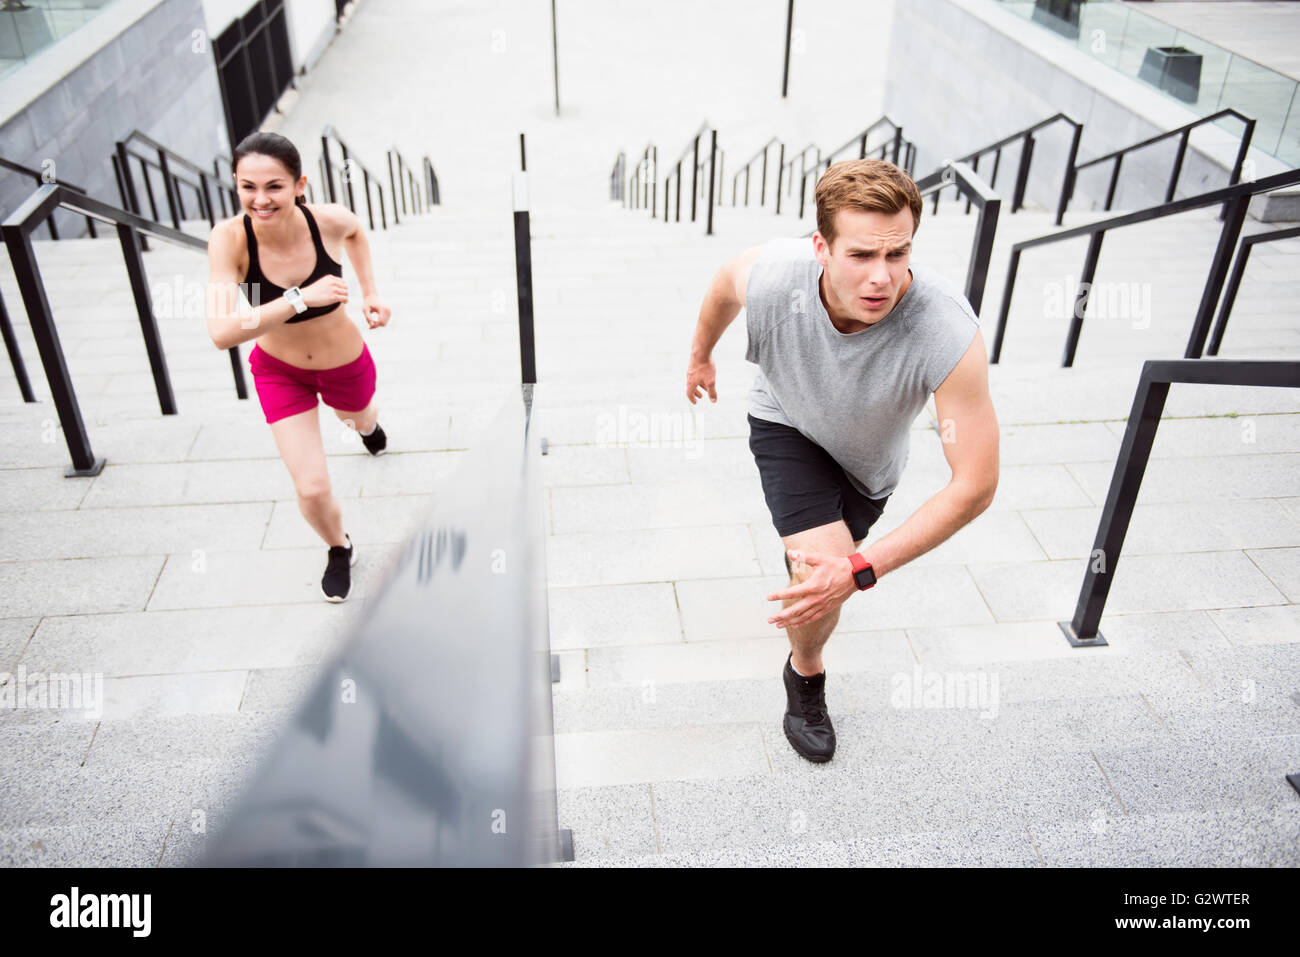 Man and woman running on the stairs - Stock Image